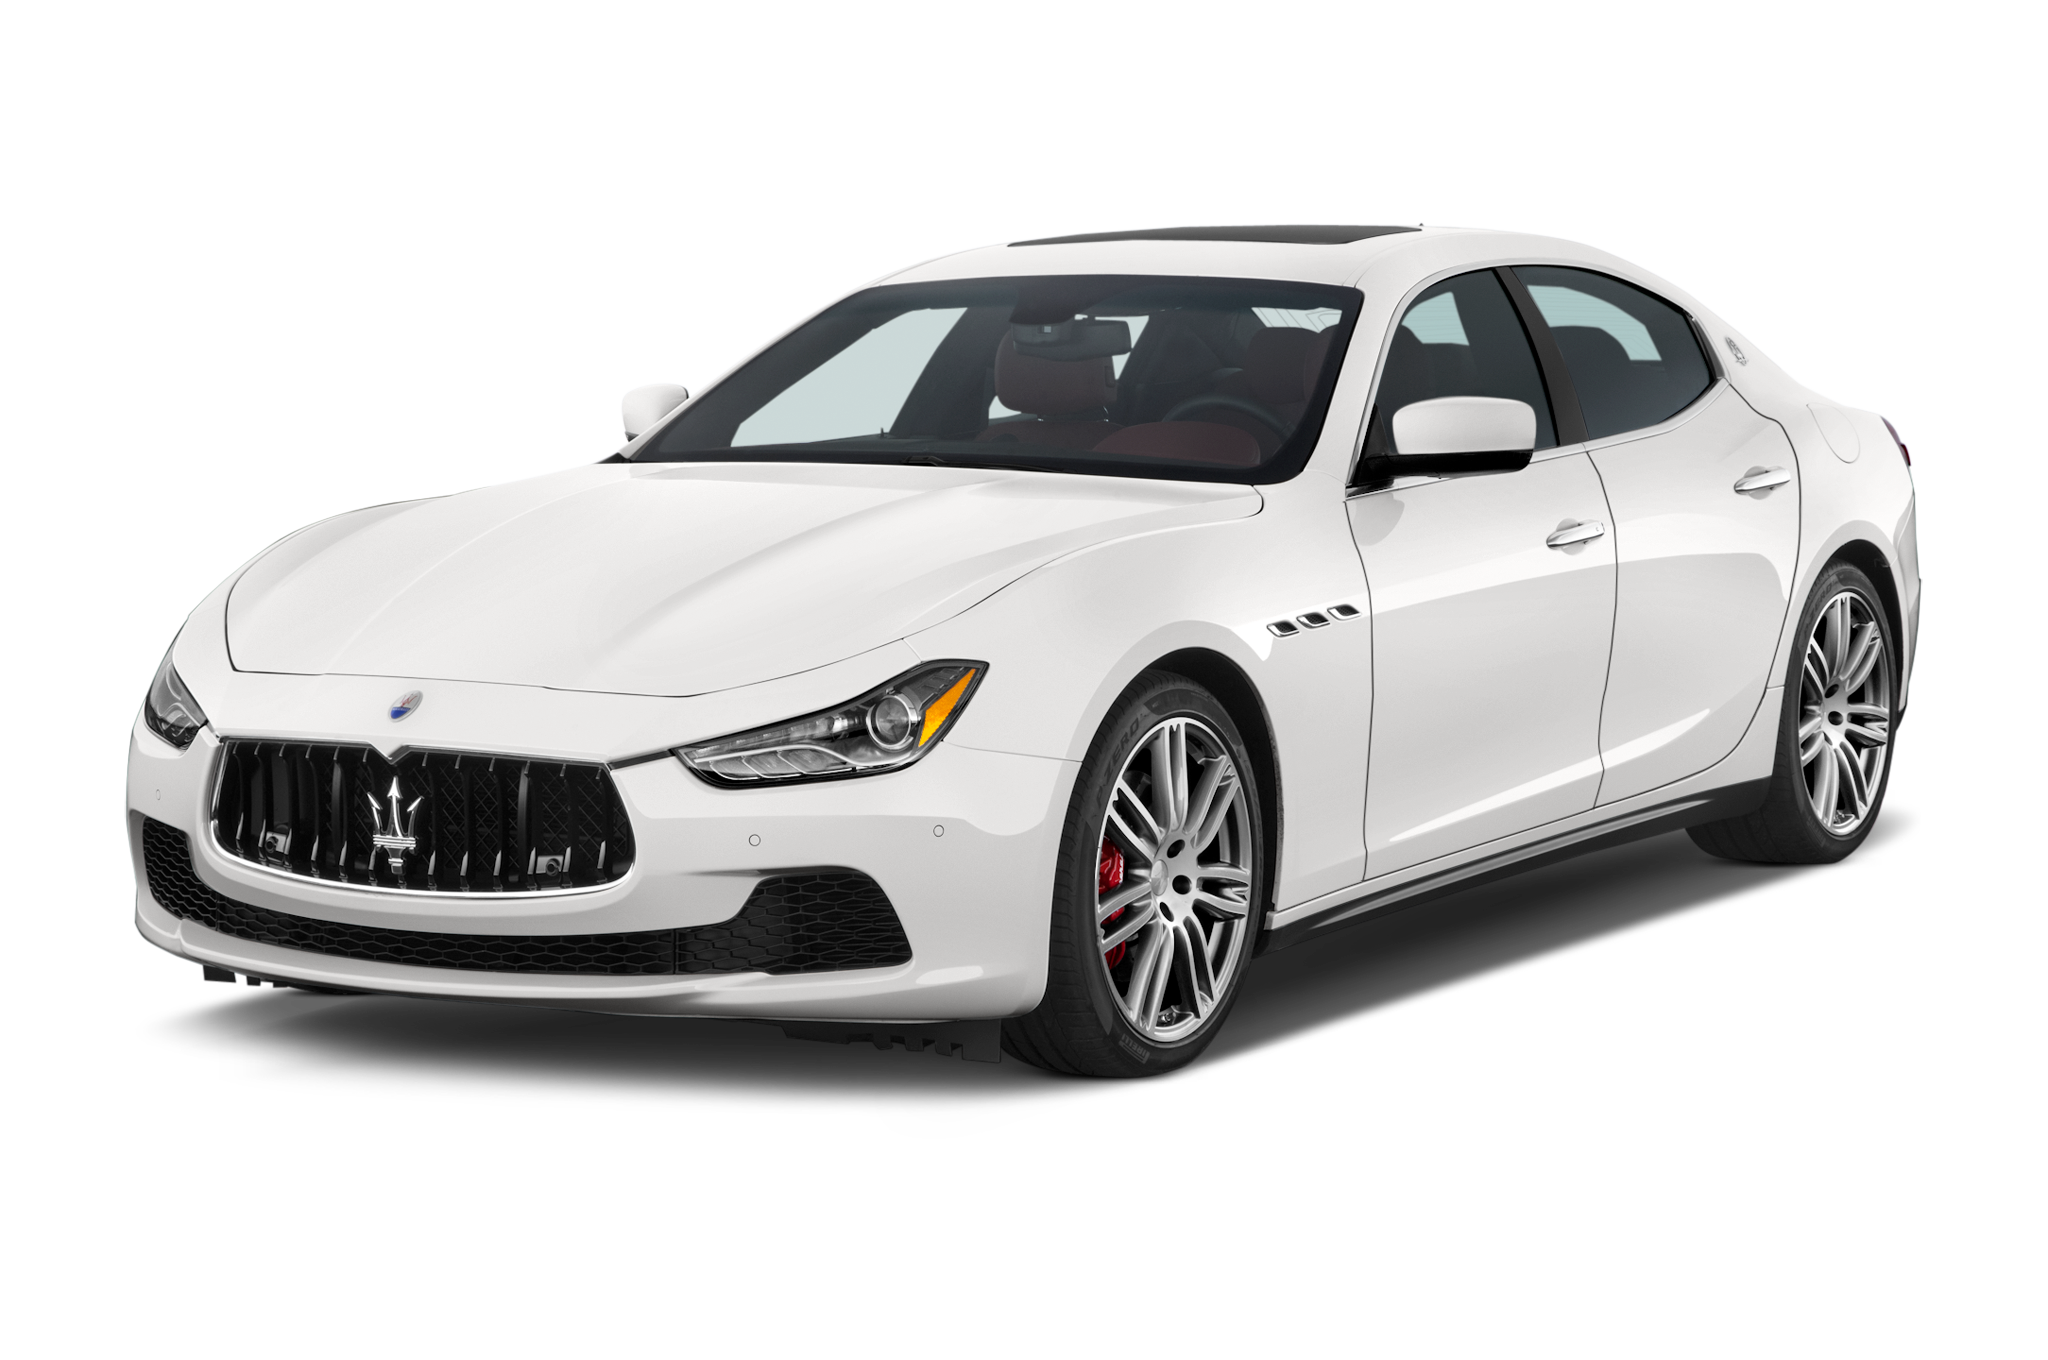 Convertible car clipart svg royalty free download Maserati clipart - Clipground svg royalty free download